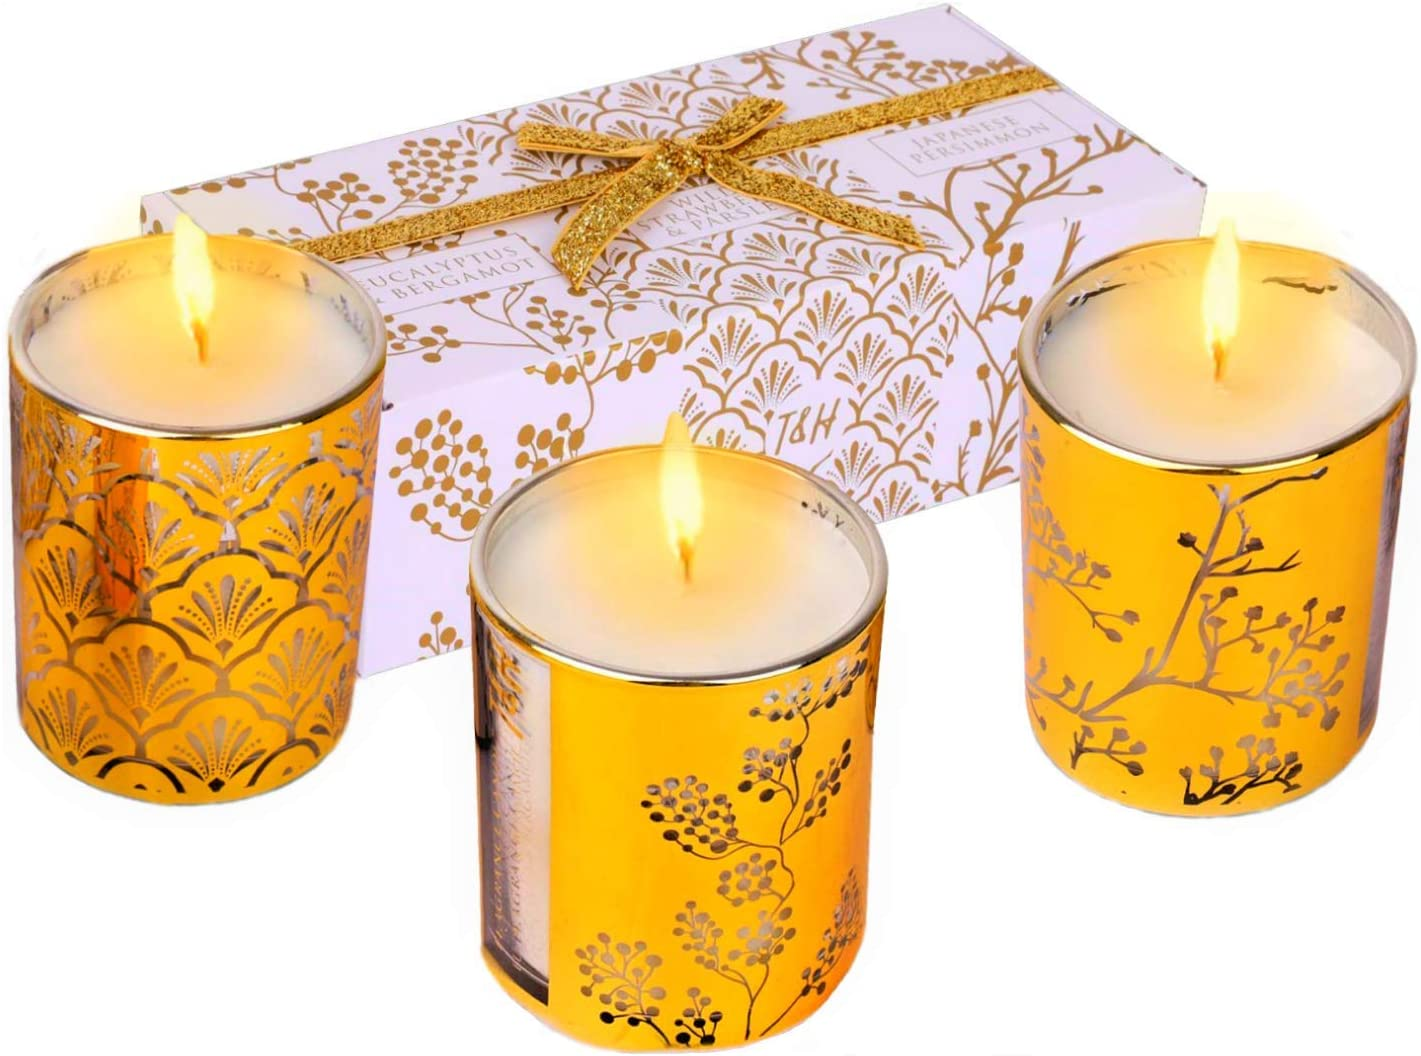 Aromatherapy Candles Gift Set   Gold Glass Candle Gift Sets for Women Relaxation   Highly Scented Soy Candles Gift Box   Pure Soy Candles Gold Decor Accents   Stress Relief Gifts for Coworkers